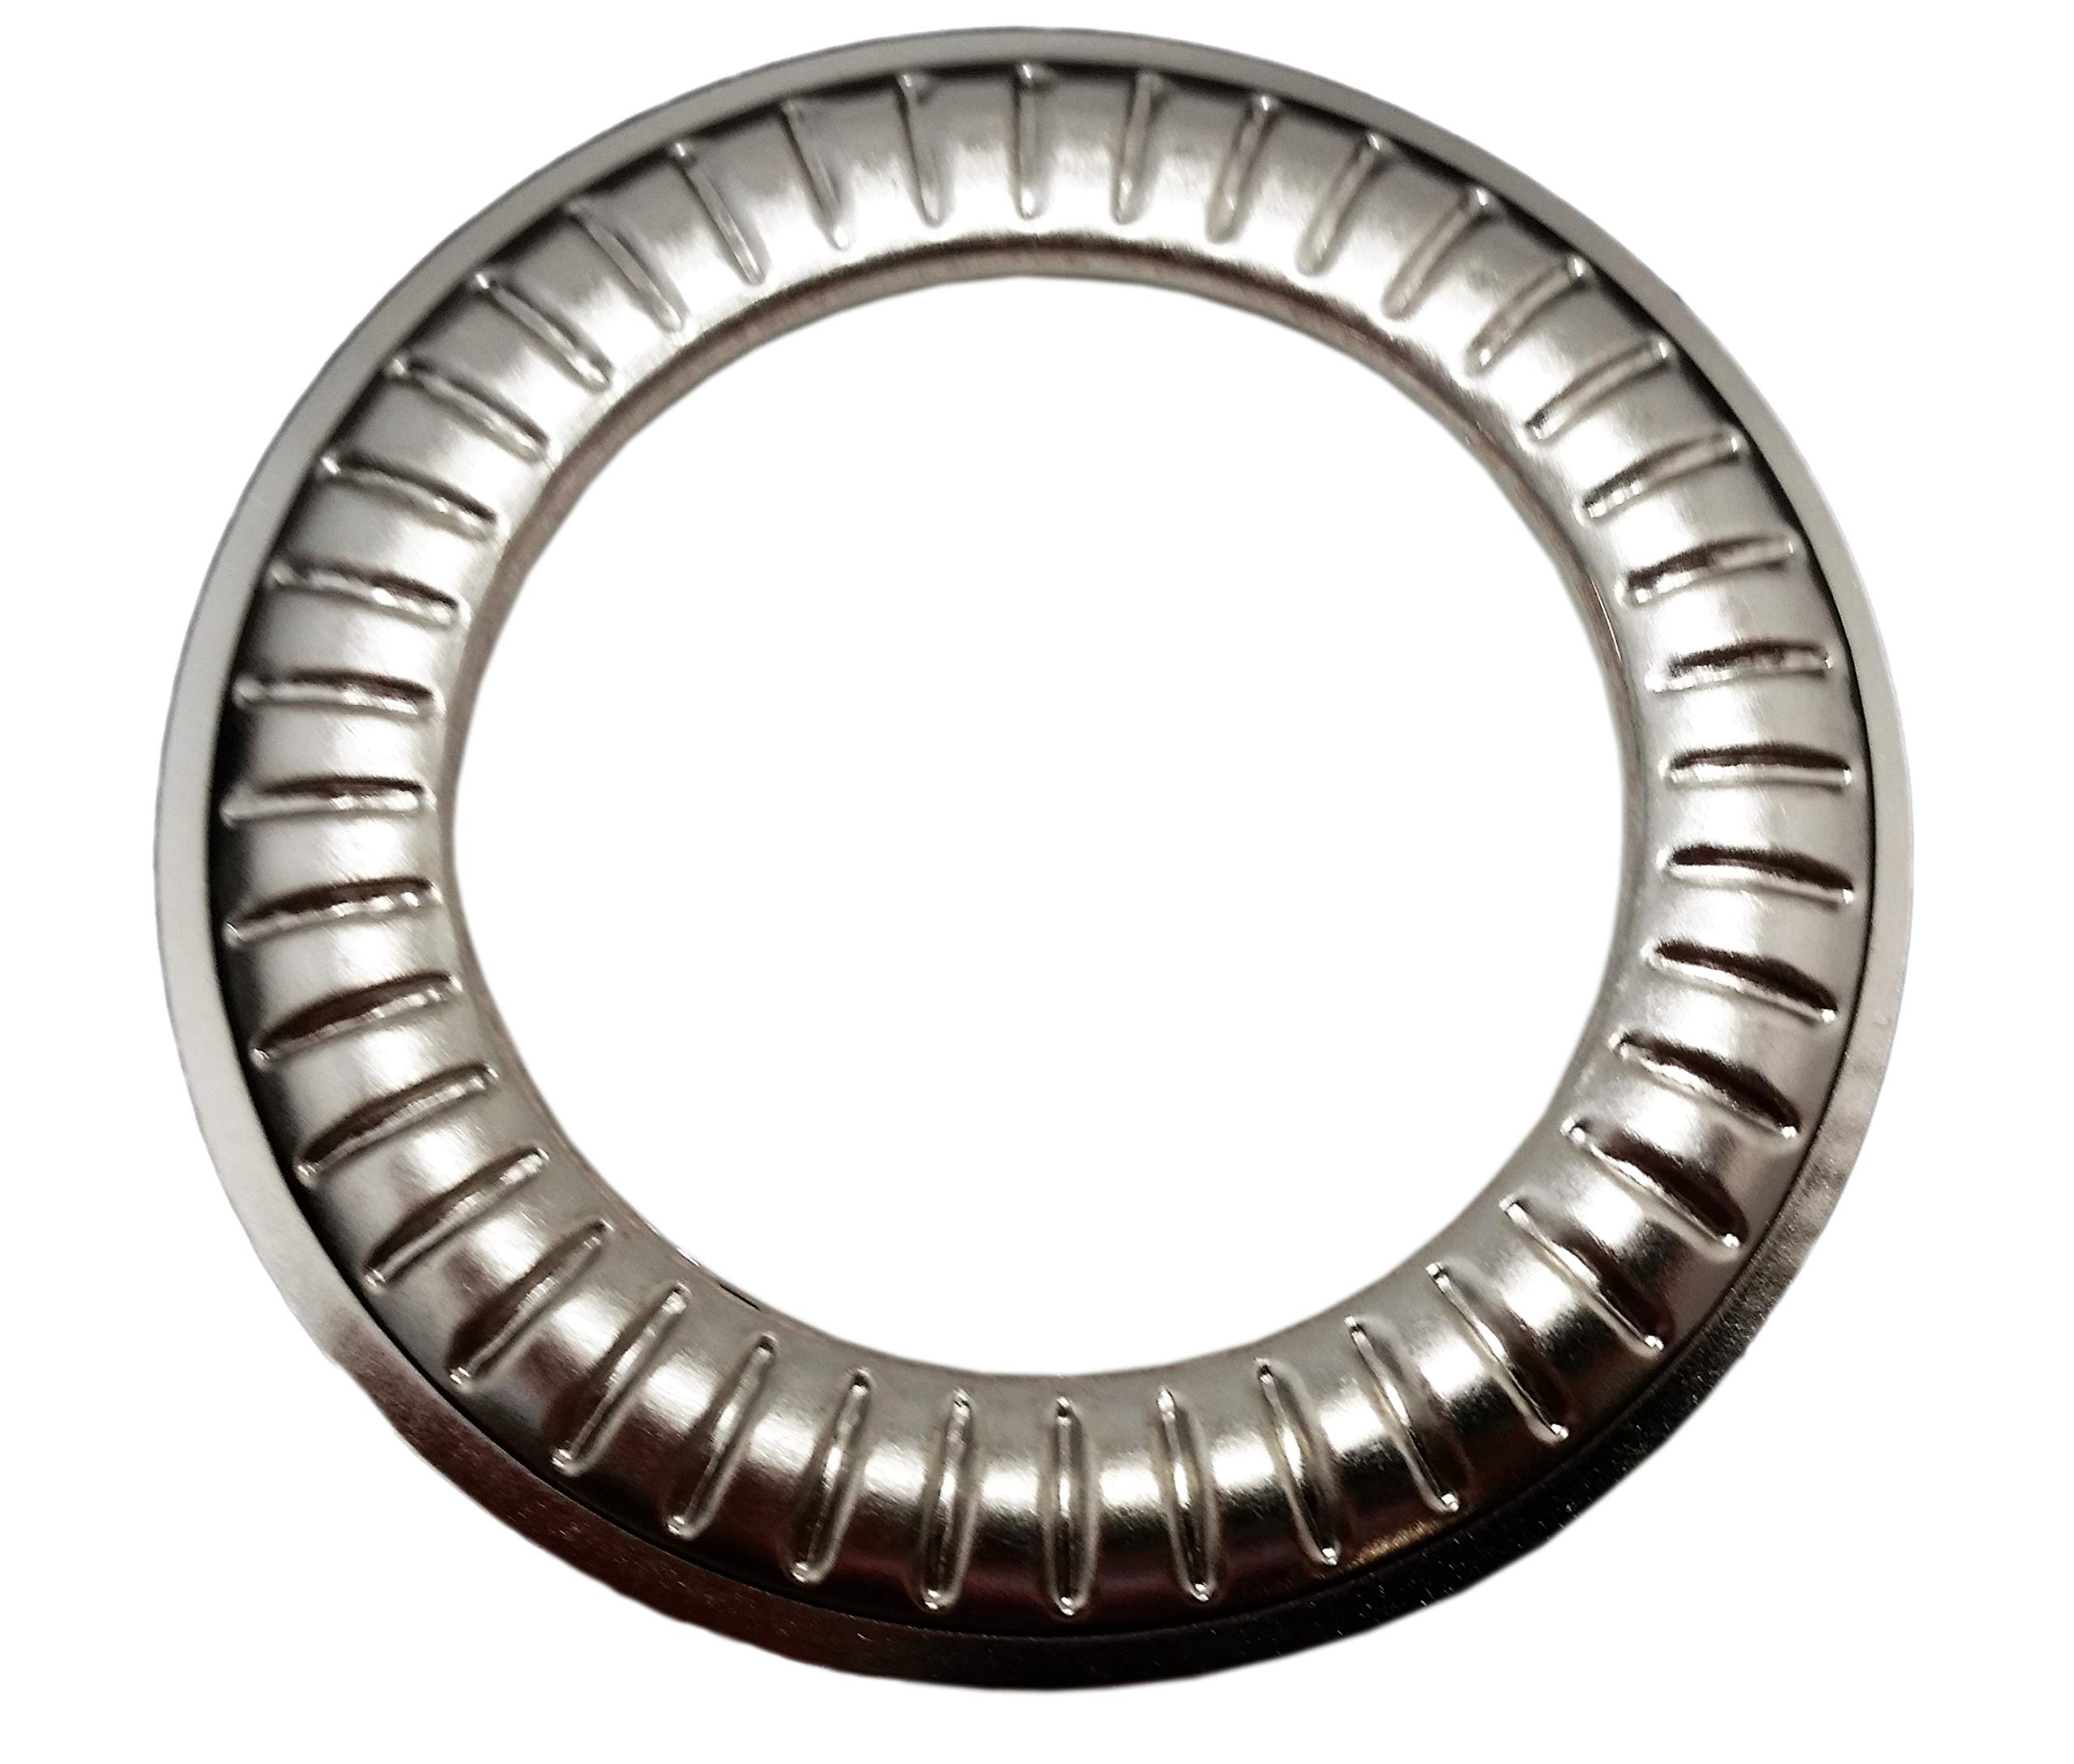 Large Nickel Design #11 Metal Curtain Drapery Hardware Supplies #12-1 9/16 inch Inner Diameter Decorative Grommet/Rings w/Washer Eyelet Lot of 10/25 / 50/100 pcs (Pack of 50) by Lushes Curtains